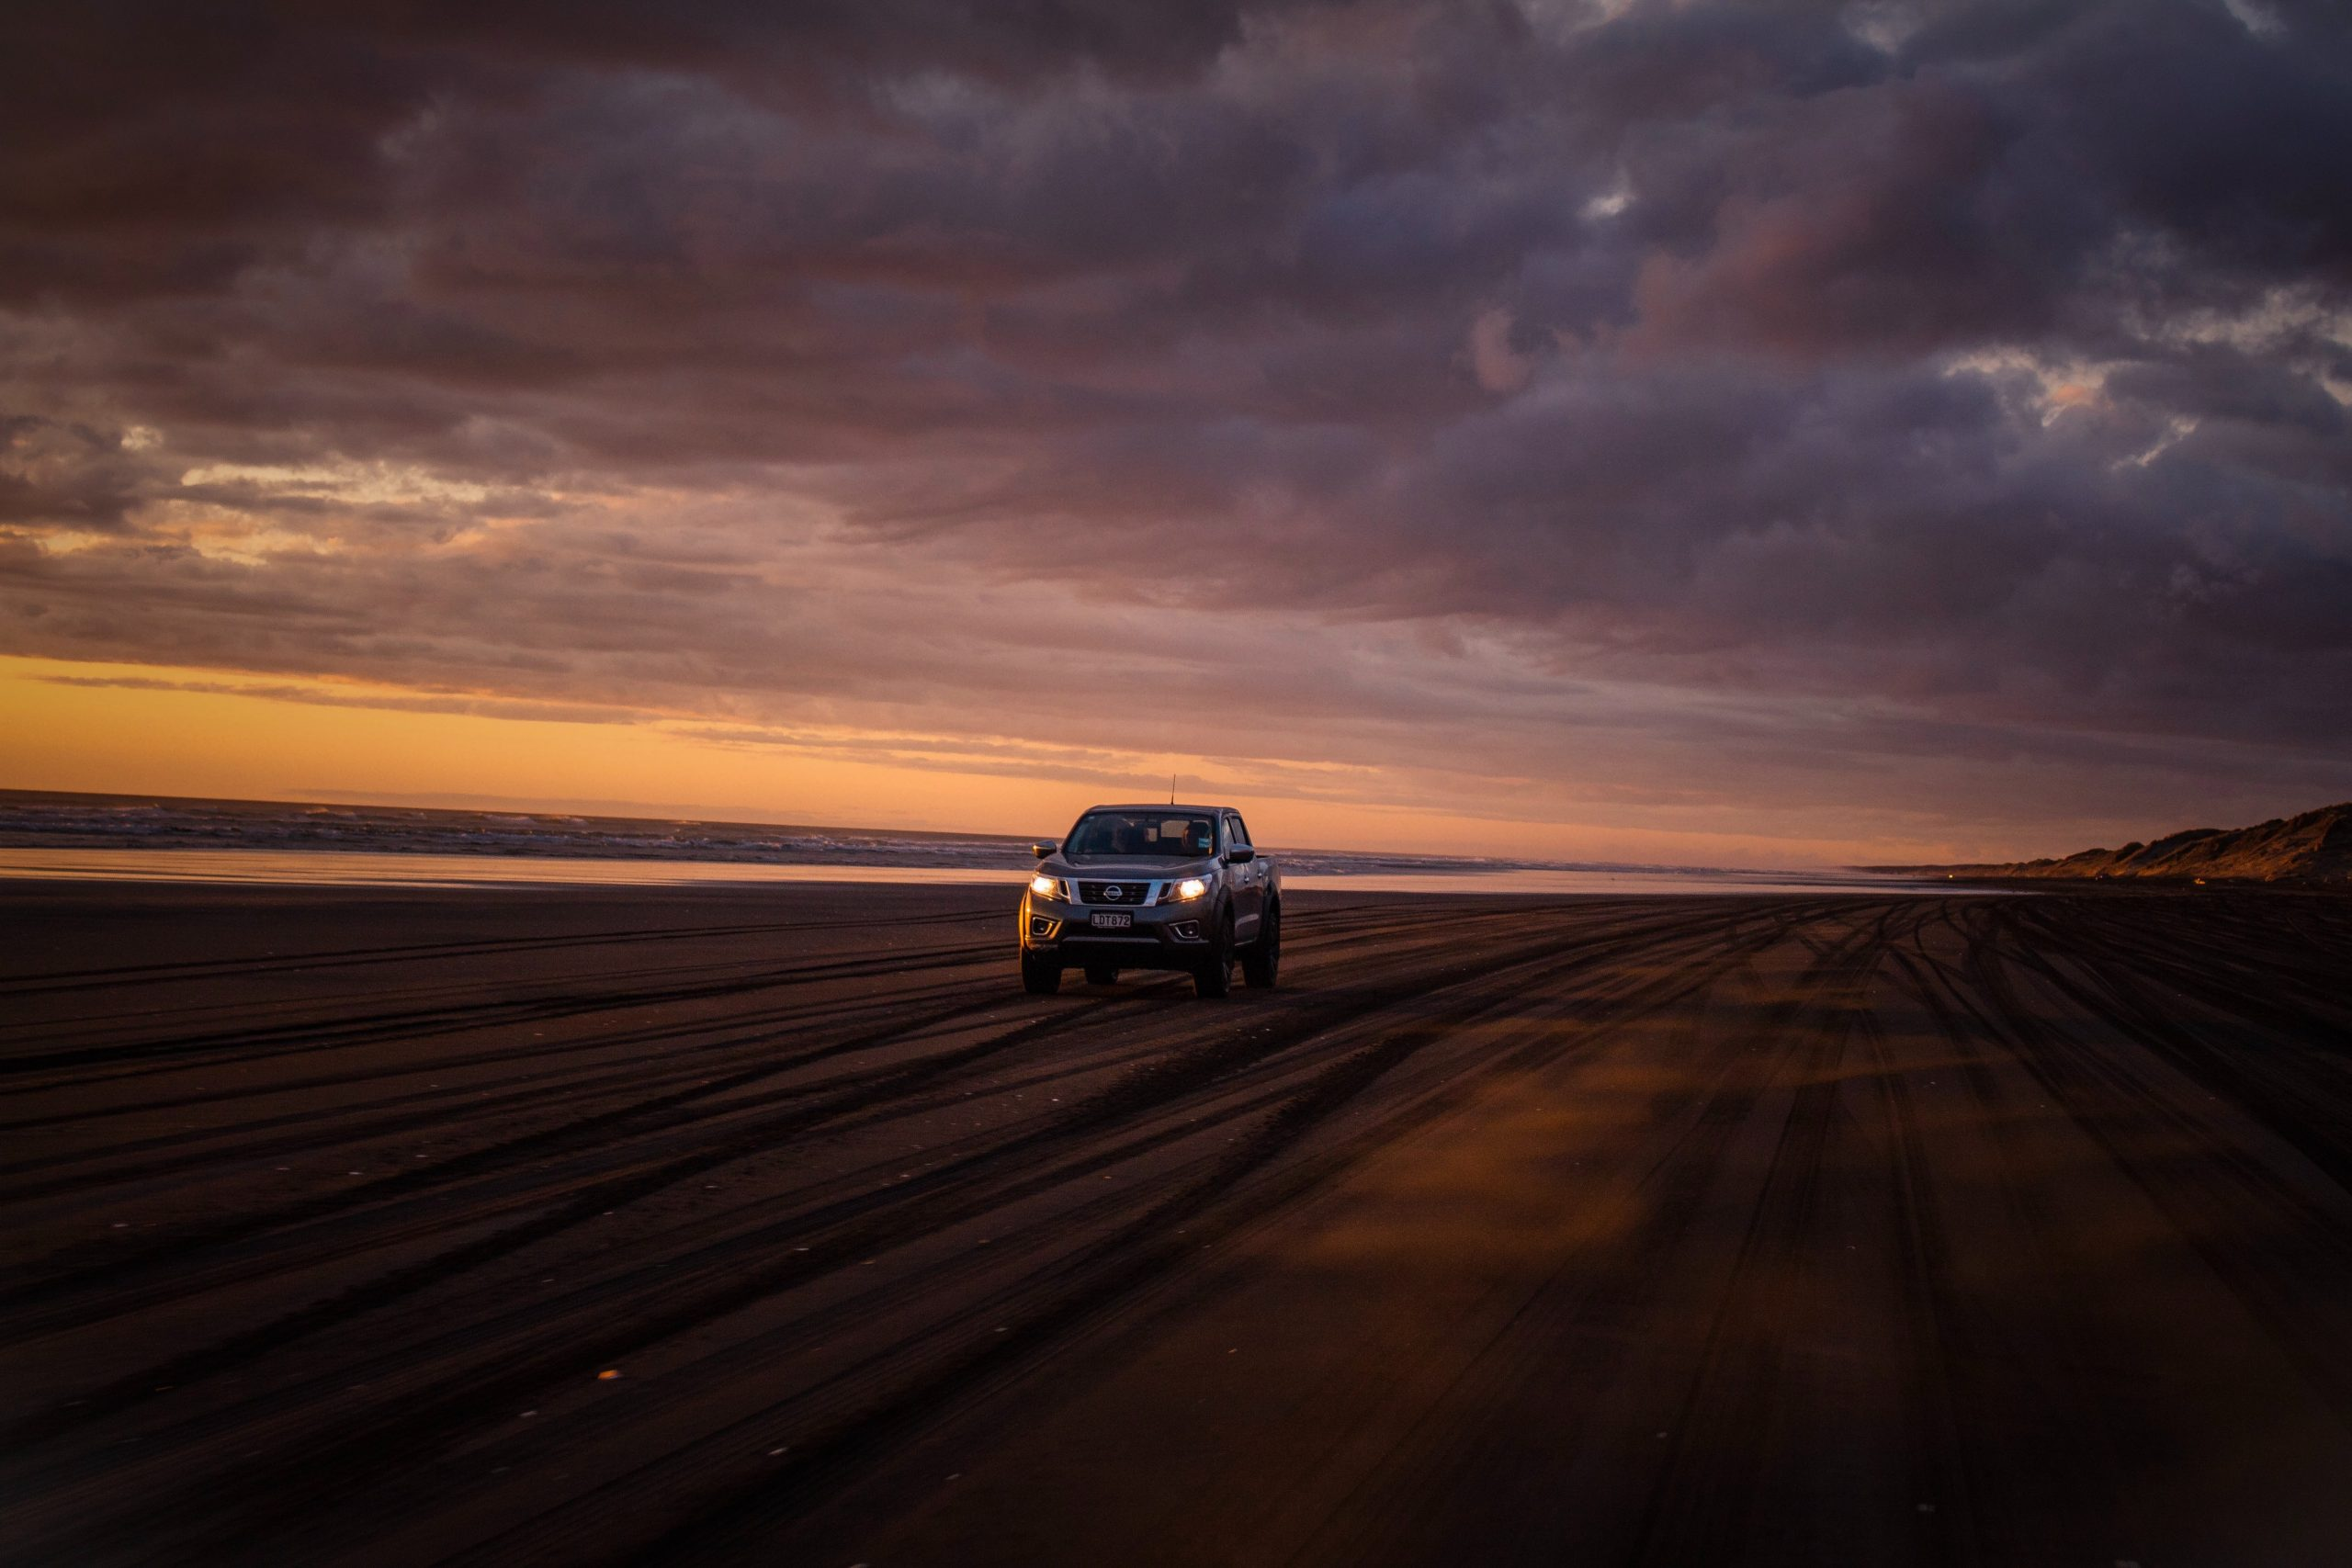 diesel remapping Maroochydore - SUV driving on sand at night